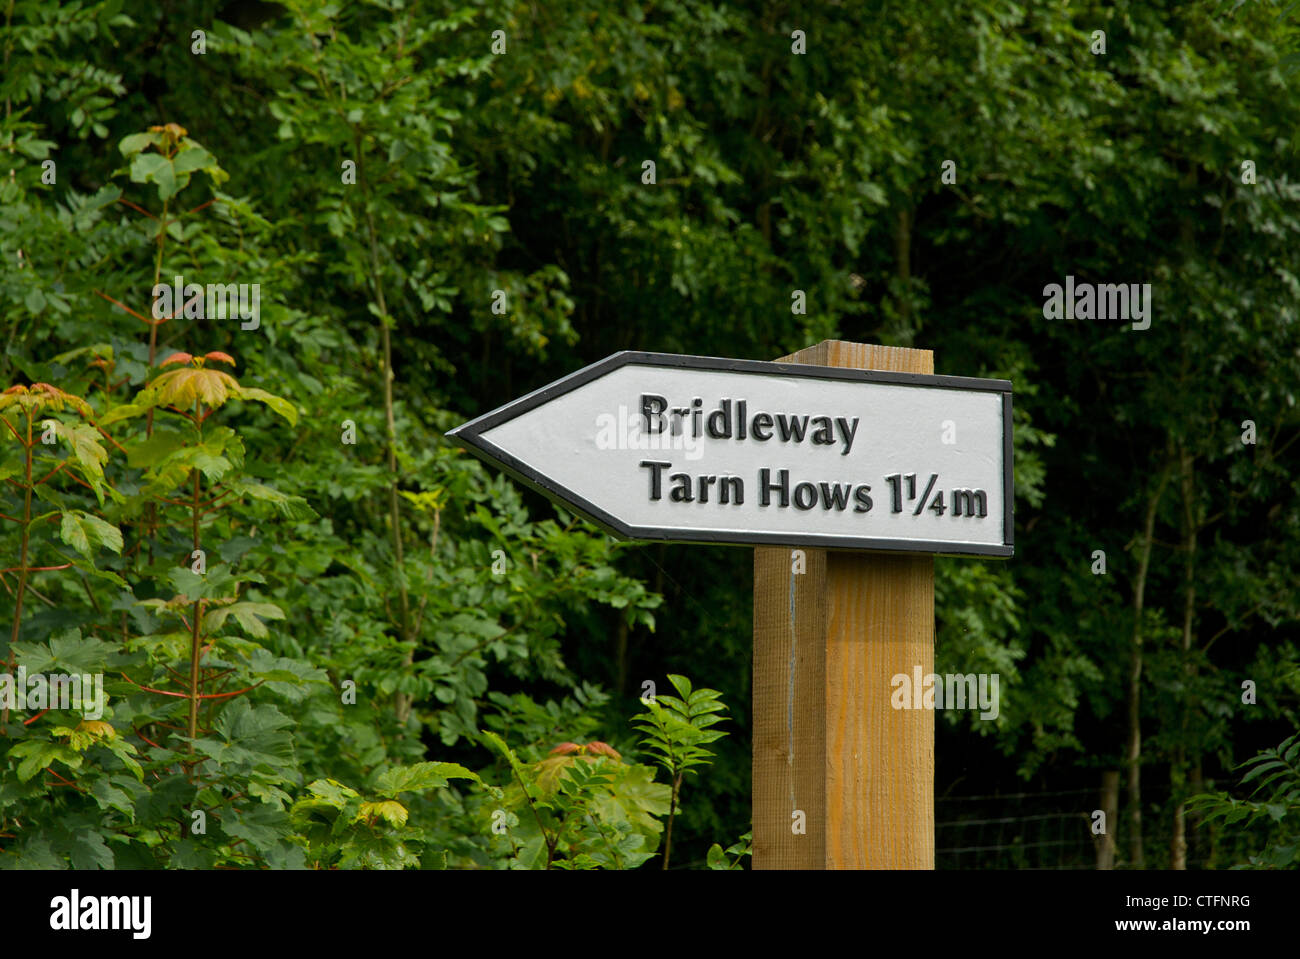 Sign: bridleway to Tarn Hows, near Coniston, Lake District National Park, Cumbria, England UK - Stock Image